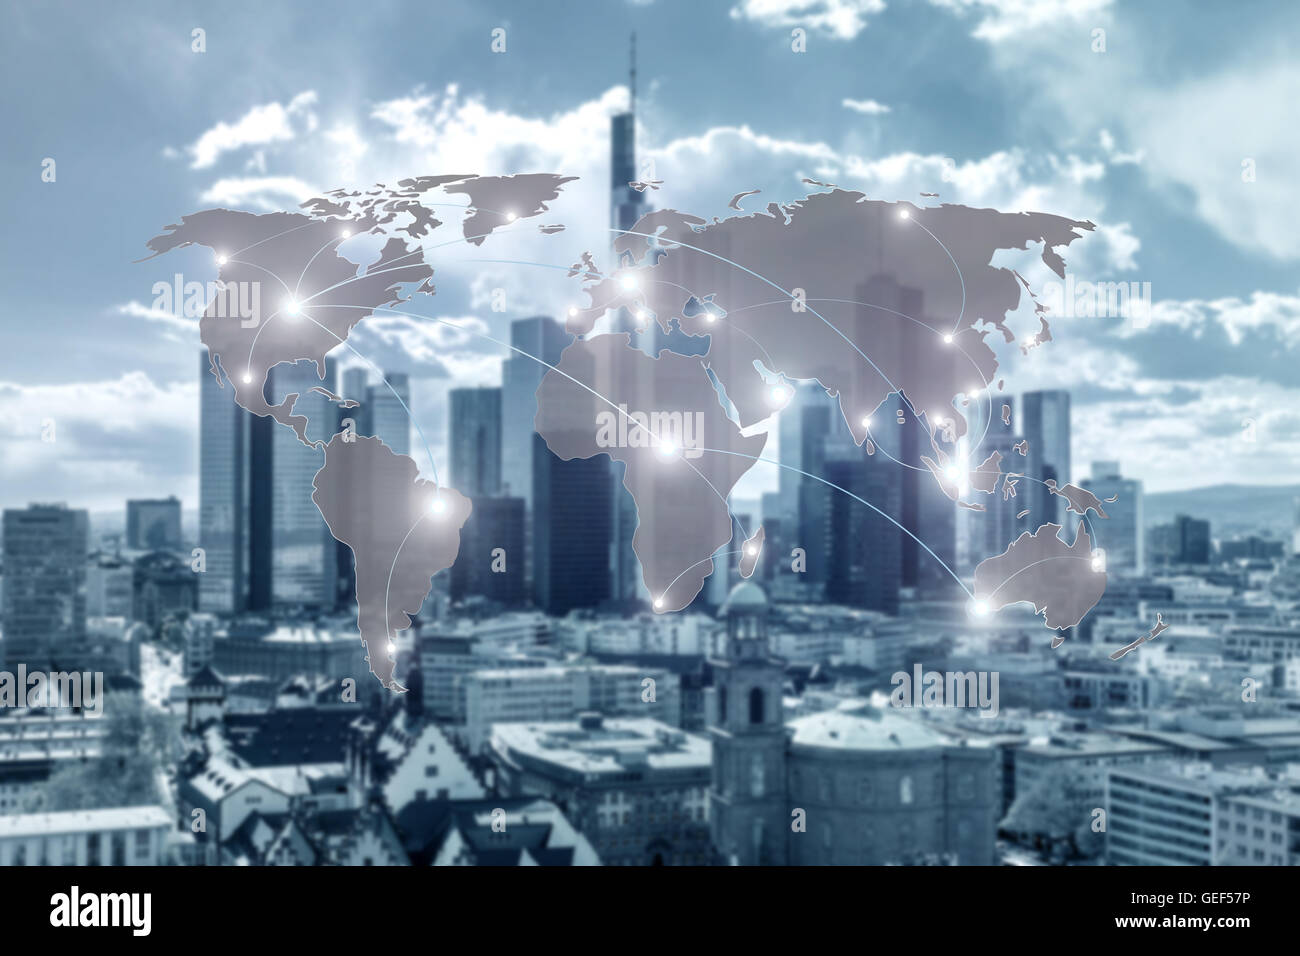 Networking concept - Network and world map on blur city use for global network partners background. Stock Photo